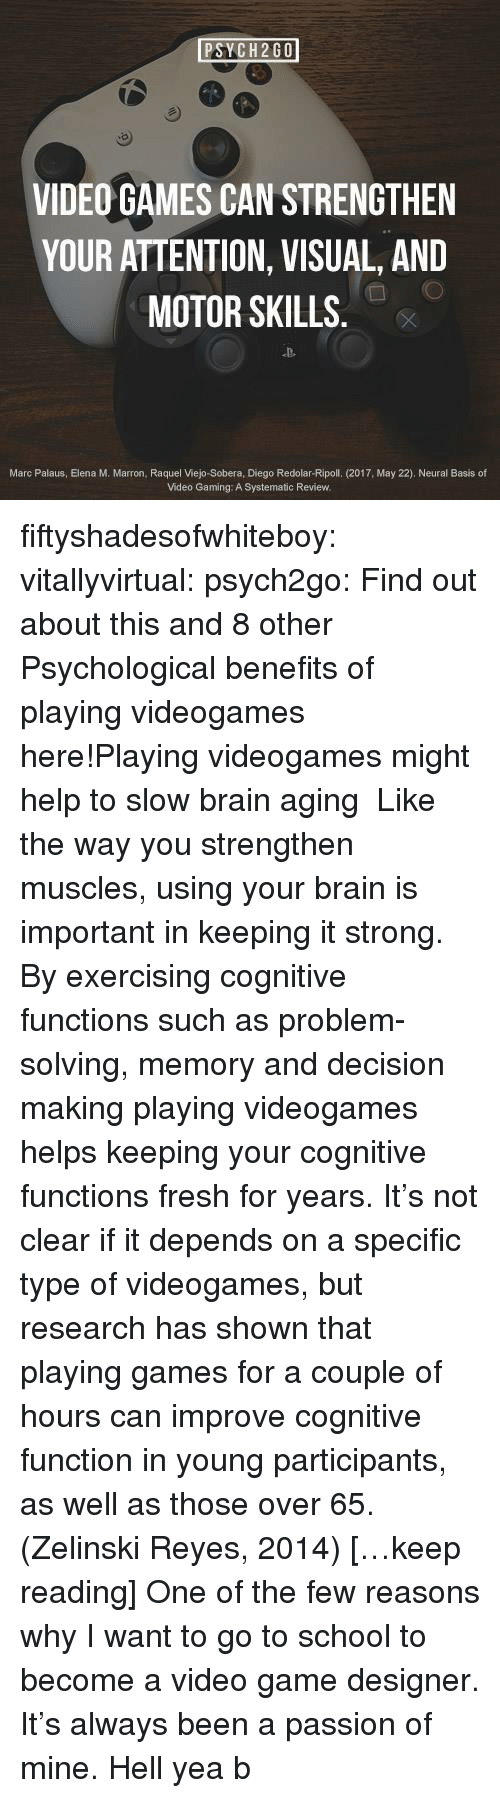 cognitive: PSYCH2GO  VIDEO GAMES CAN STRENGTHEN  YOUR ATTENTION, VISUAL, AND  MOTOR SKILLS  D-  Marc Palaus, Elena M. Marron, Raquel Viejo-Sobera, Diego Redolar-Ripoll. (2017, May 22). Neural Basis of  Video Gaming: A Systematic Review. fiftyshadesofwhiteboy:  vitallyvirtual:  psych2go:  Find out about this and 8 other Psychological benefits of playing videogames here!Playing videogames might help to slow brain aging  Like the way you strengthen muscles, using your brain is important in keeping it strong. By exercising cognitive functions such as problem-solving, memory and decision making playing videogames helps keeping your cognitive functions fresh for years. It's not clear if it depends on a specific type of videogames, but research has shown that playing games for a couple of hours can improve cognitive function in young participants, as well as those over 65. (Zelinski  Reyes, 2014)[…keep reading]  One of the few reasons why I want to go to school to become a video game designer. It's always been a passion of mine.  Hell yea b